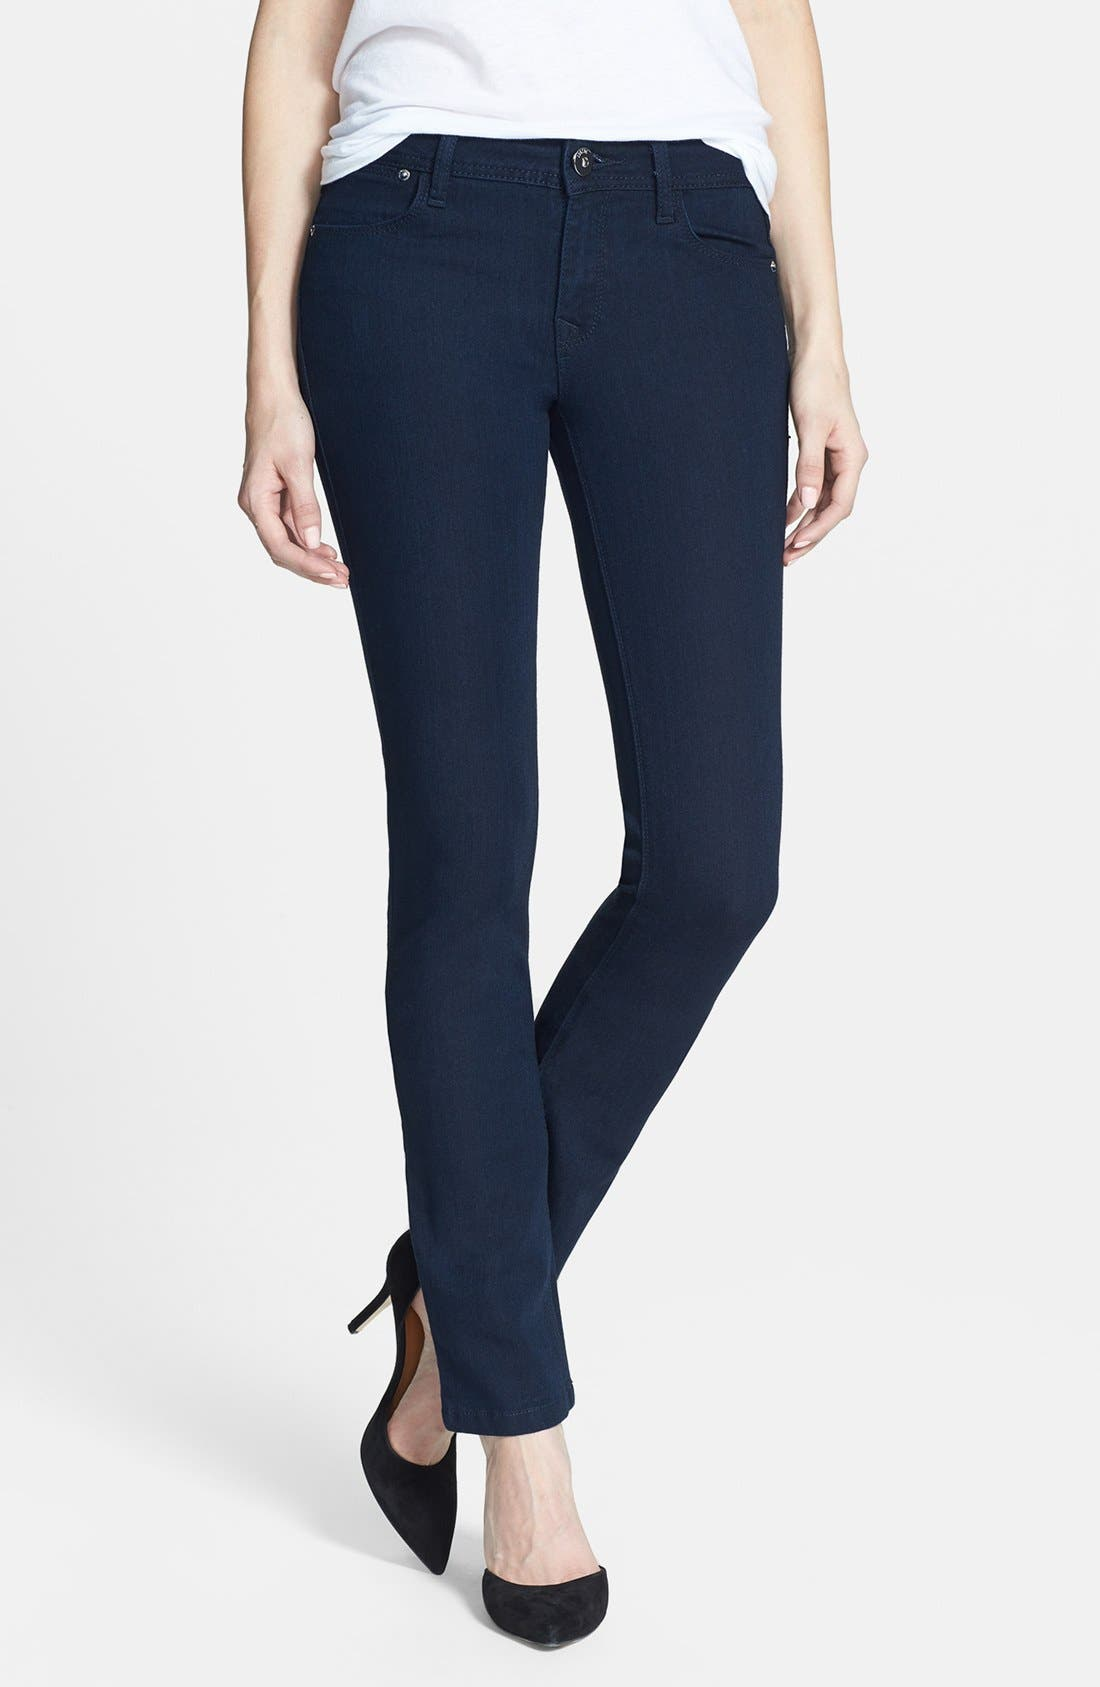 Alternate Image 1 Selected - DL1961 'Coco' Curvy Straight Jeans (Flatiron)